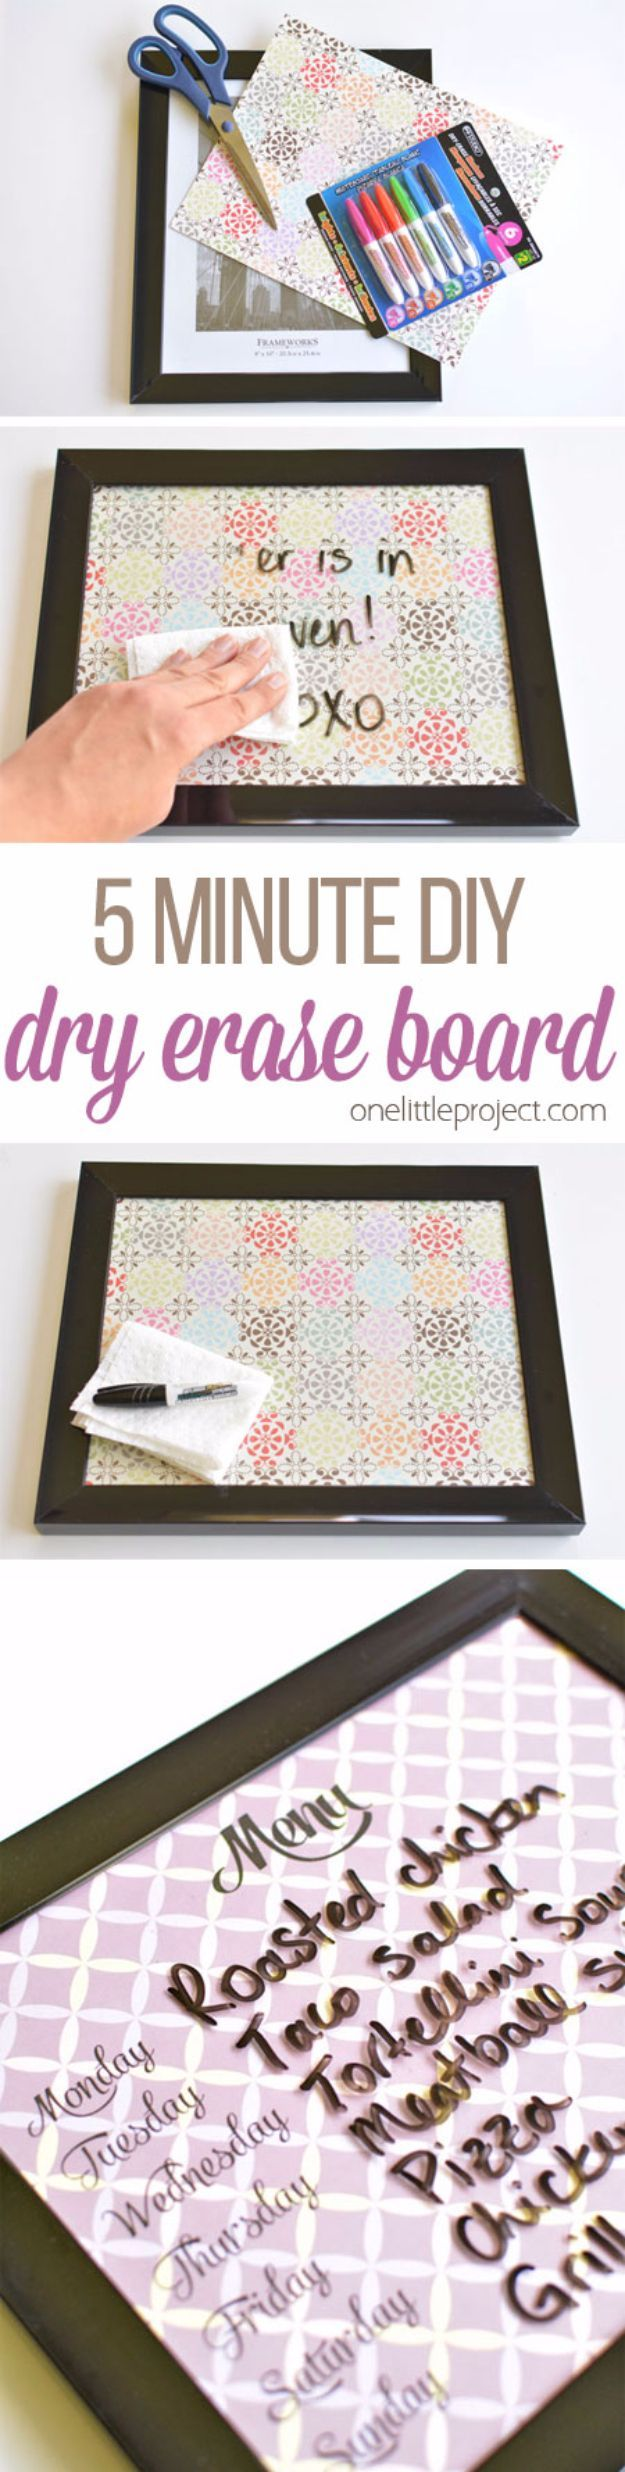 41 Of The Easiest Diys Ever Best Ideas For Crafts Diy Ideas